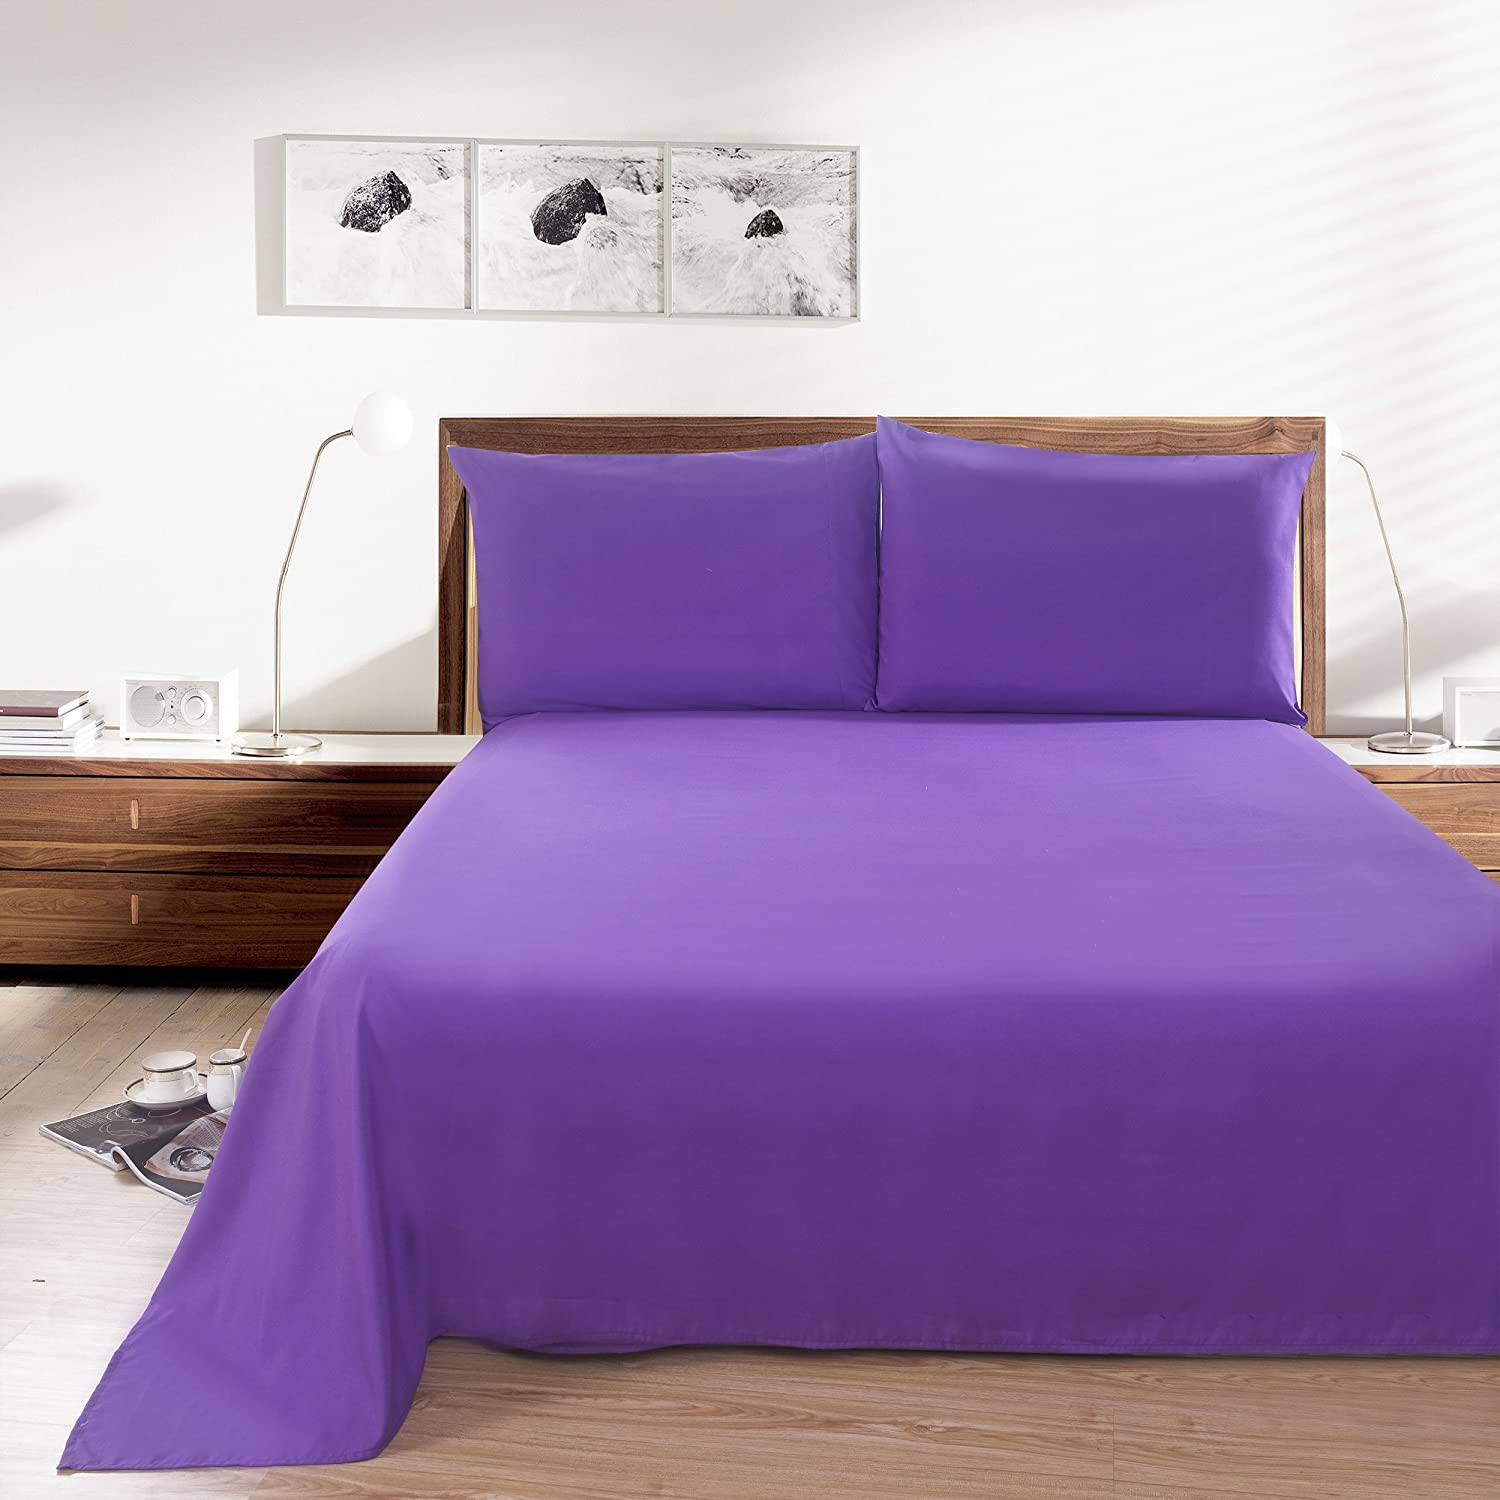 Lullabi Linen Purple 100% Brushed Soft Microfiber Bed Sheet Set